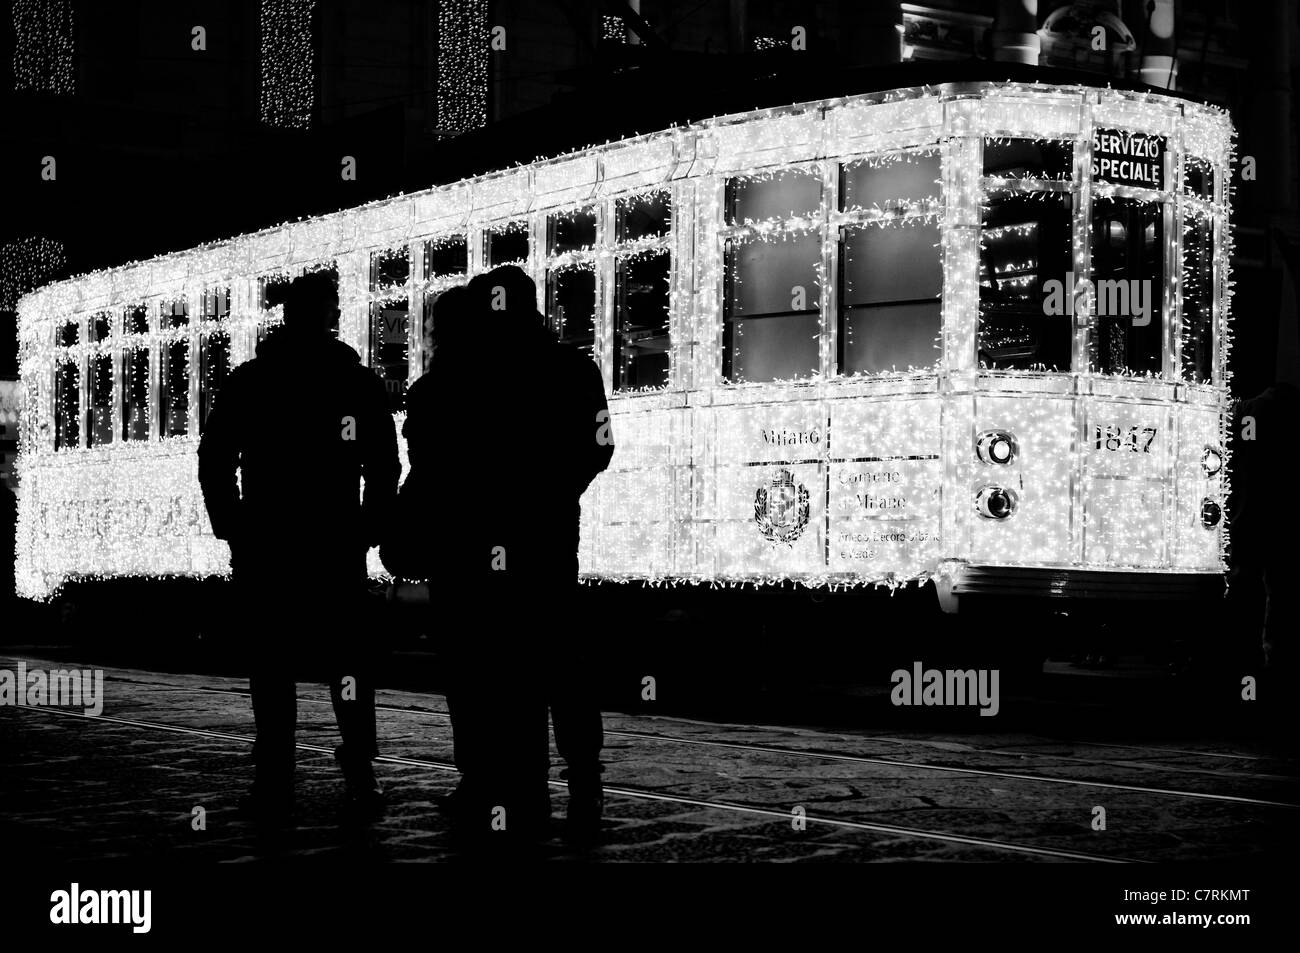 Milan, Italy. Special Christmas edition tram - Stock Image